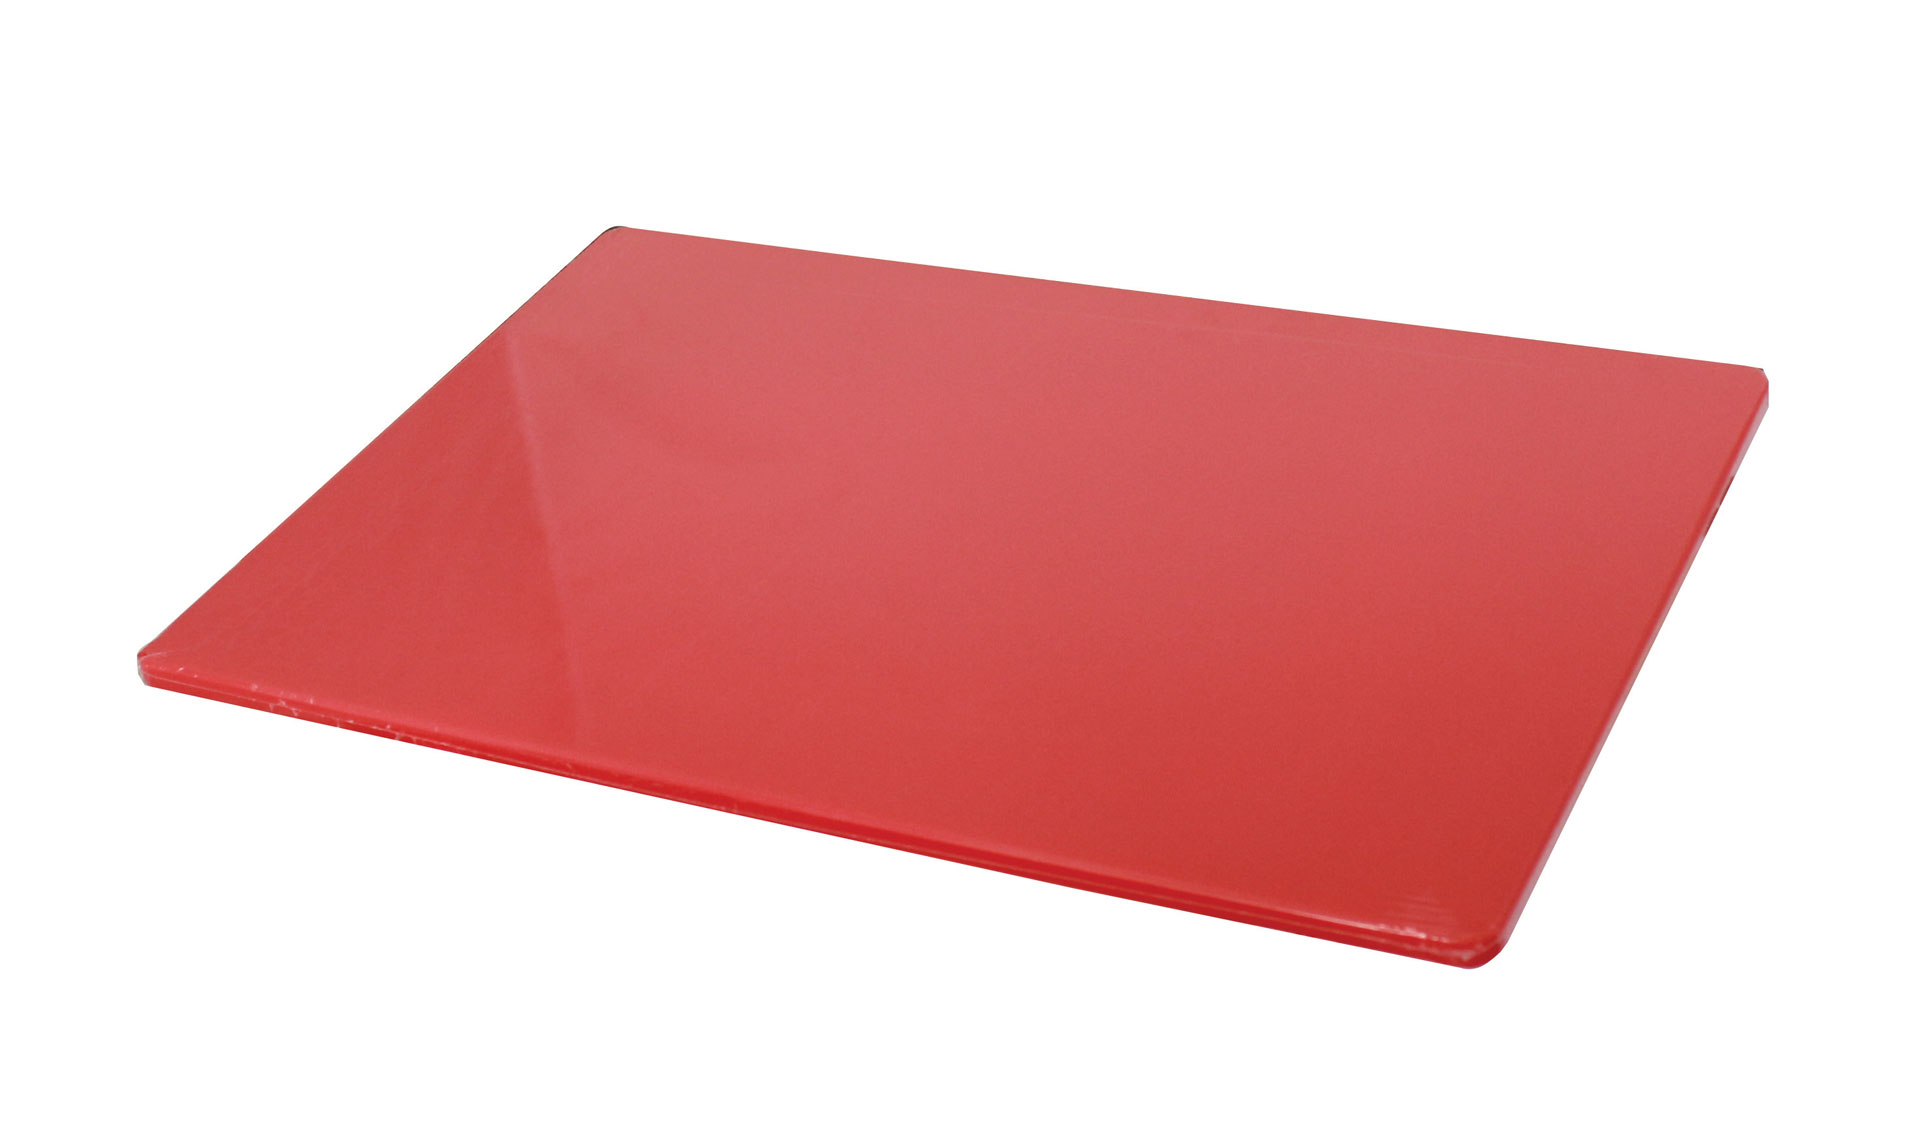 Red High Density Standard Size Chopping Board 457 x 300 x 12 x 12.7 mm